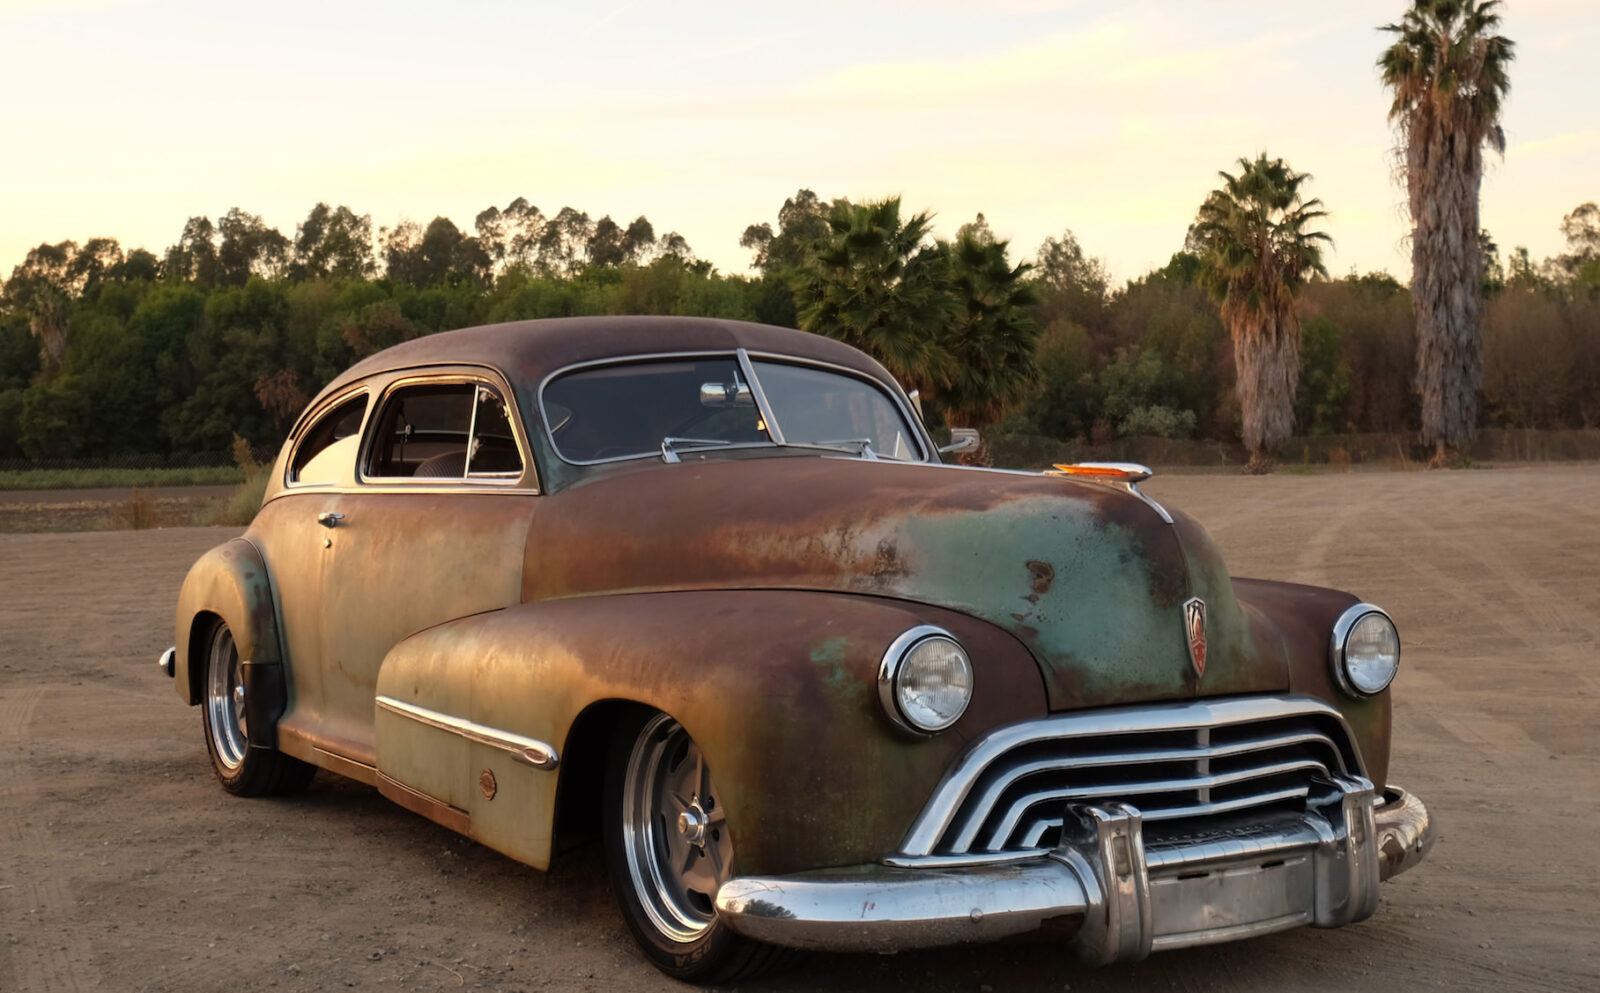 ICON Derelict Oldsmobile F34 Sunset Hero 1600x993 - 1946 Oldsmobile ICON Derelict Coupe